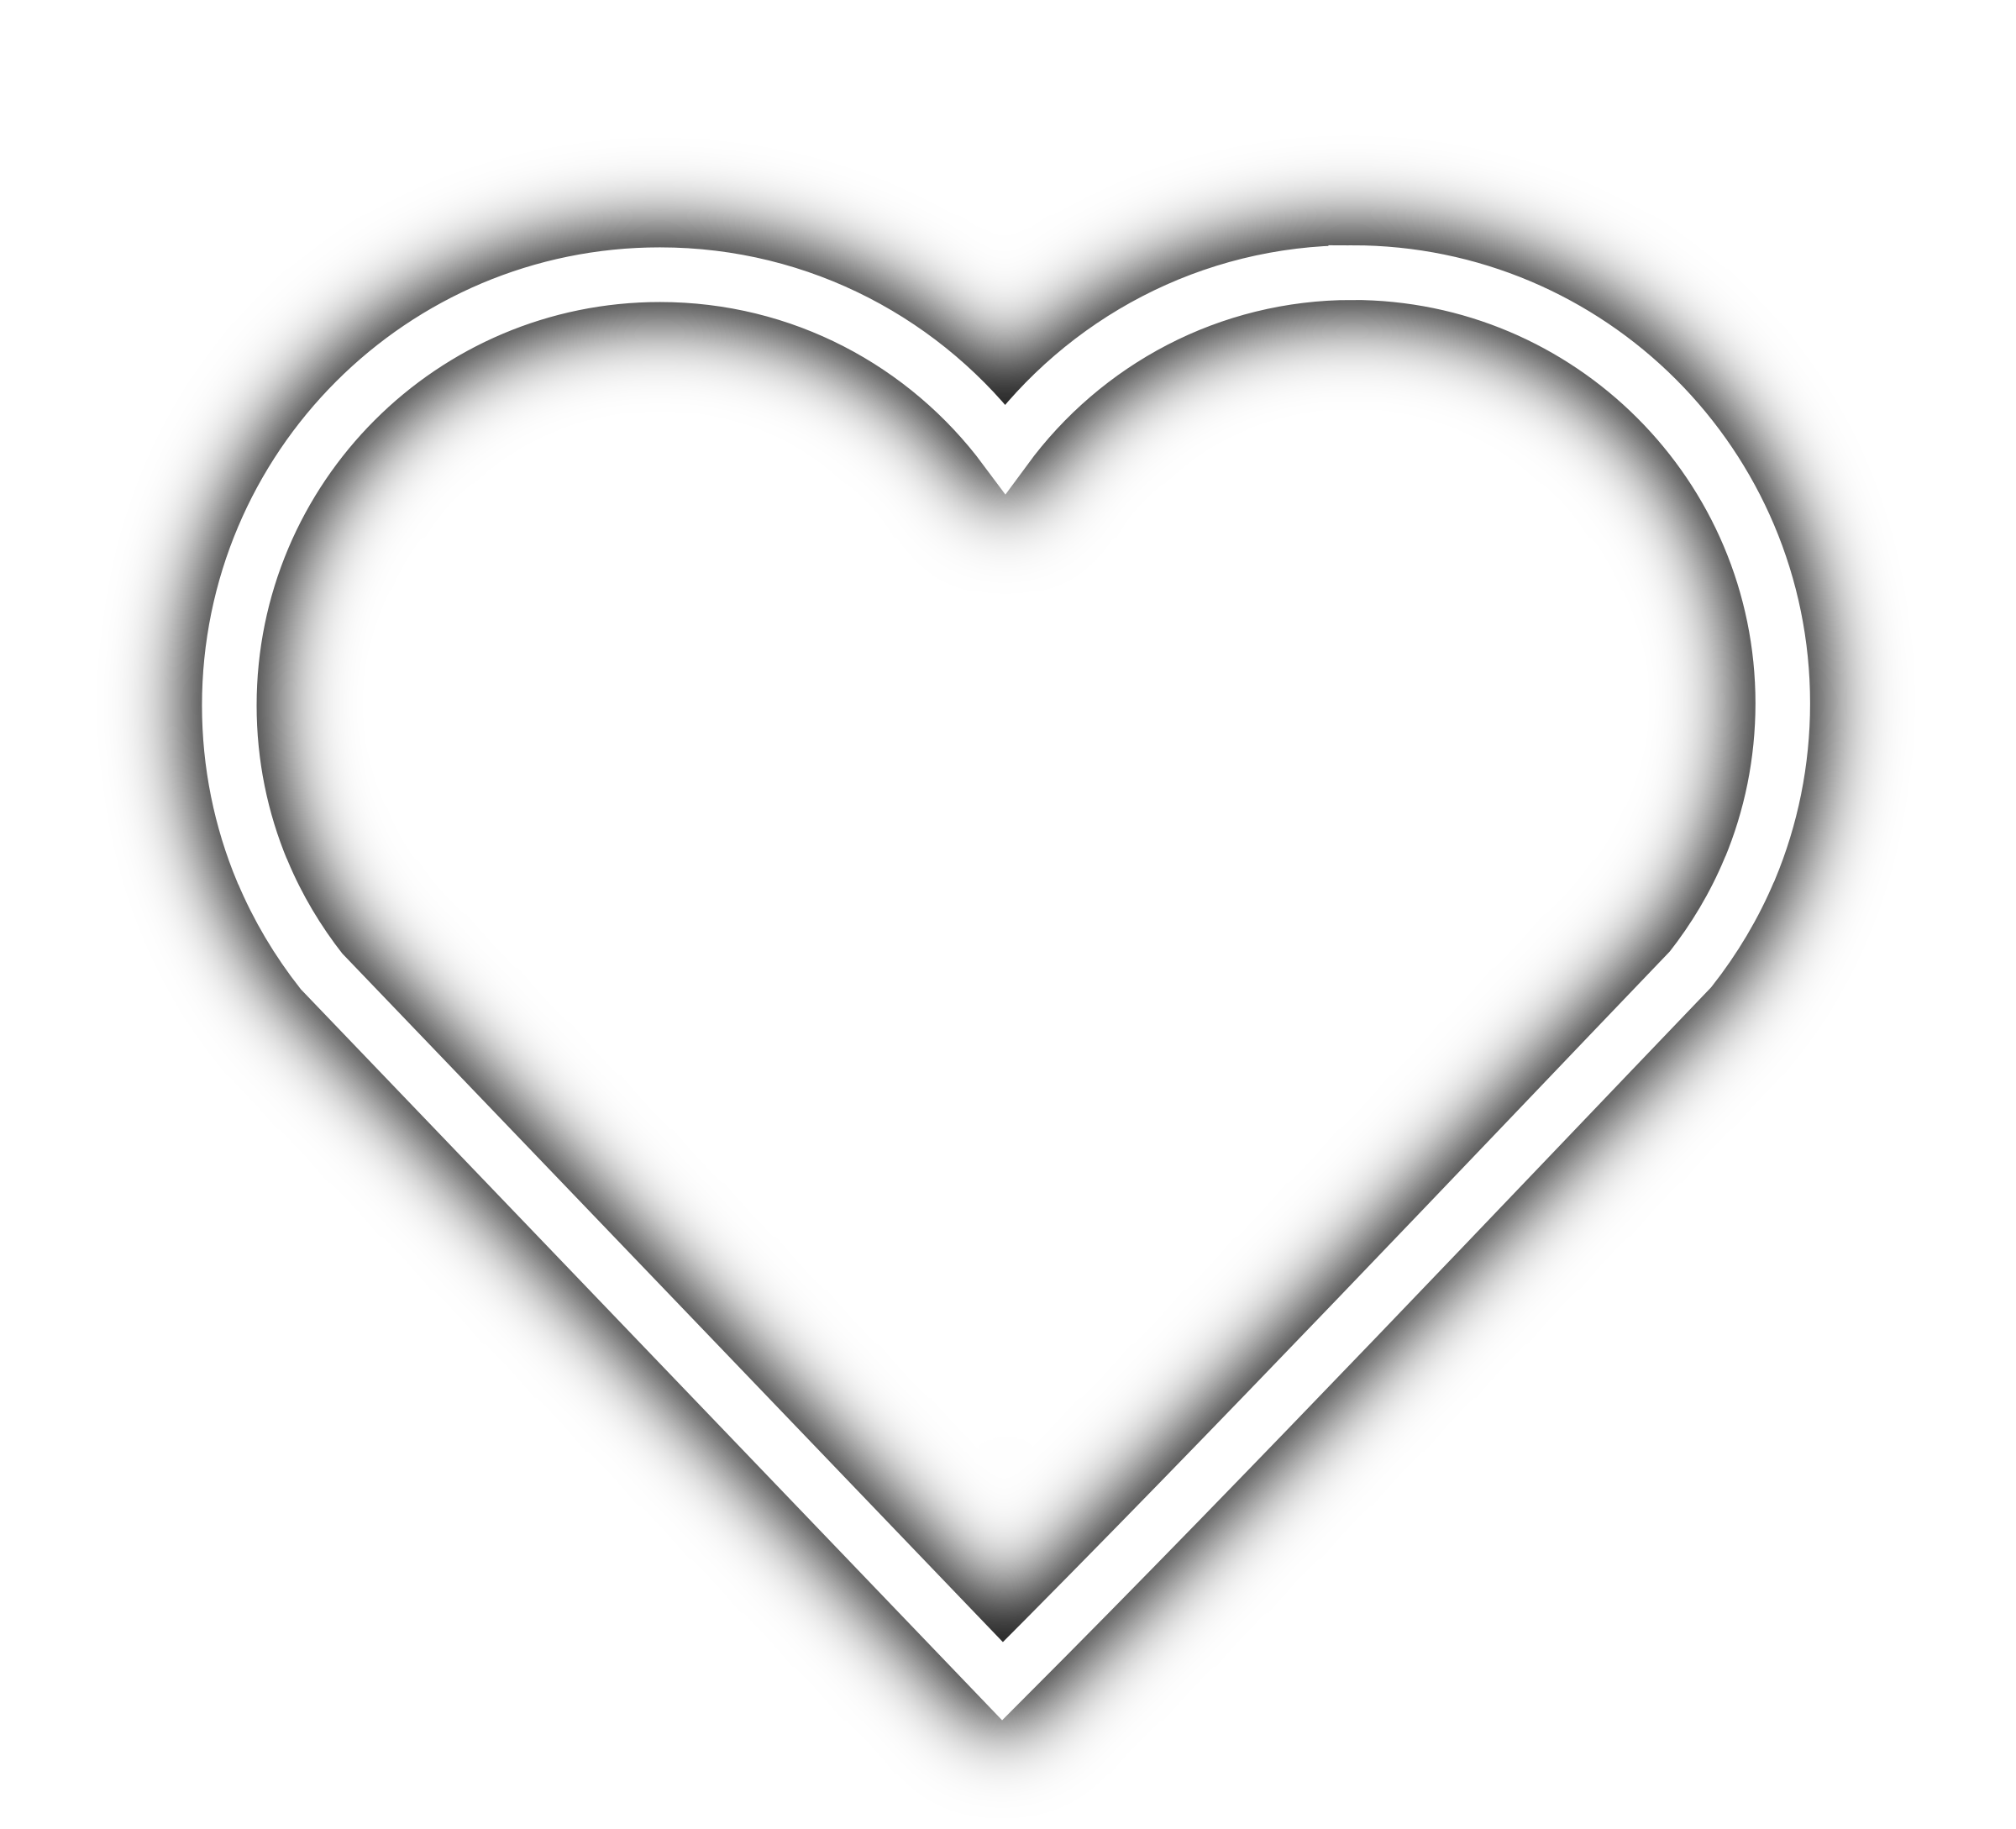 Heart clipart black and white outline jpg library download Love Symbol Clipart Choice Image - meaning of text symbols jpg library download